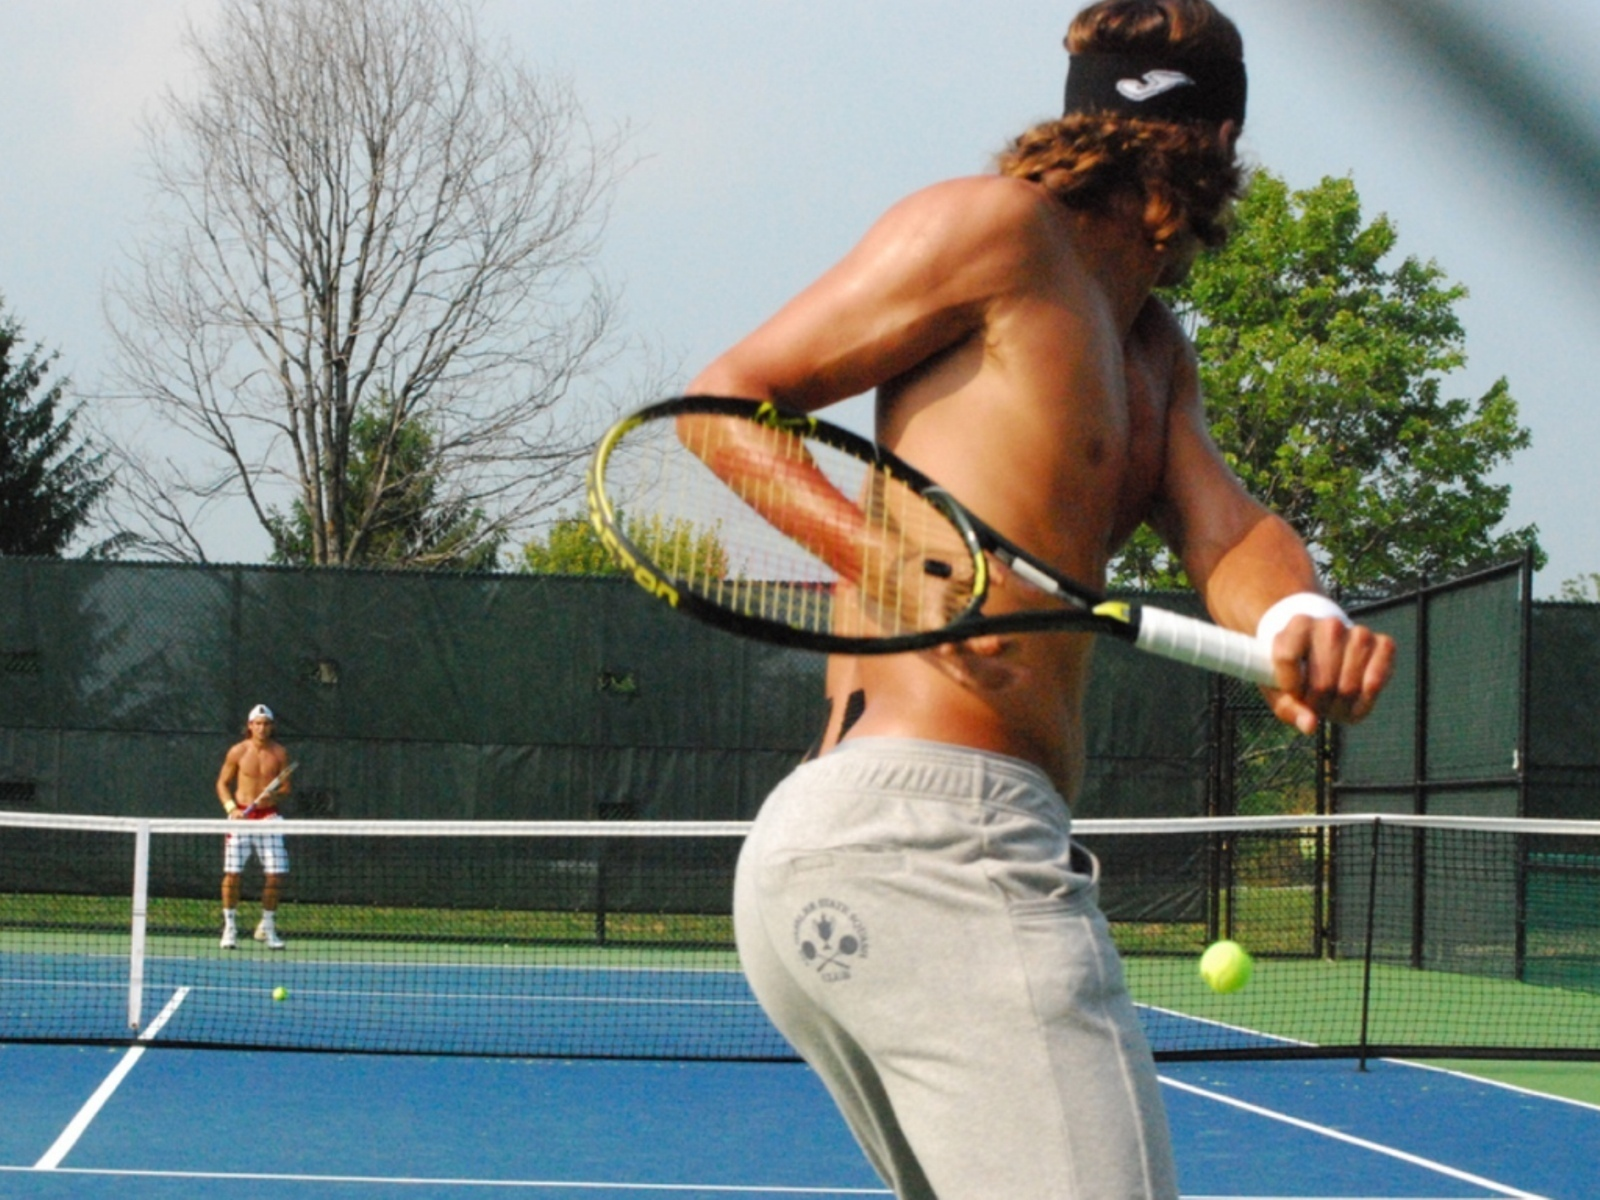 Horny tennis player whacking off